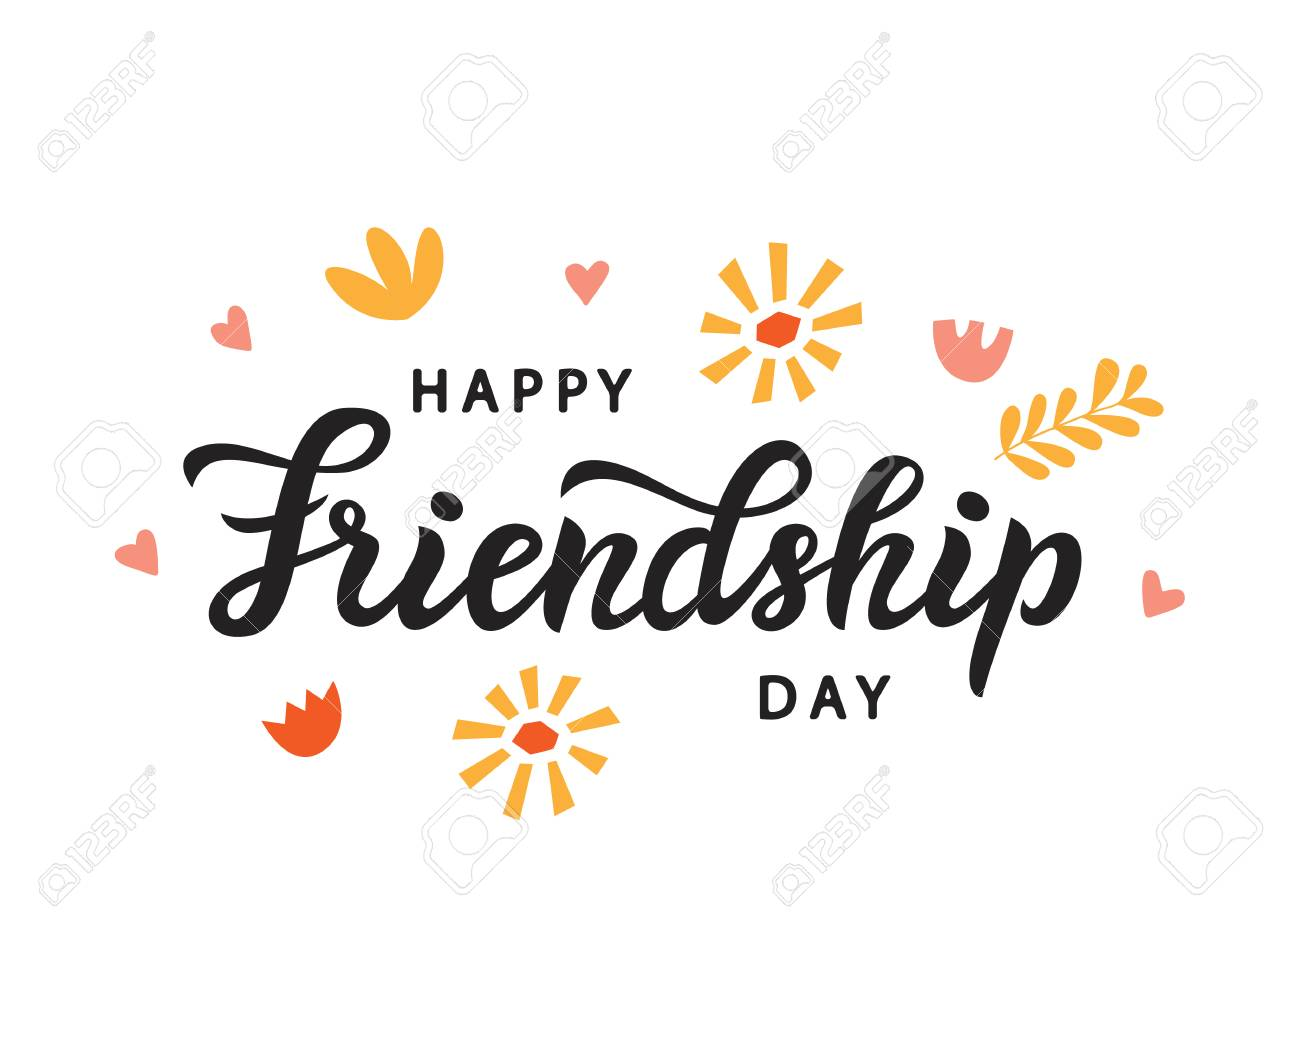 Happy Friendship Day Cute Poster Hand Written Brush Lettering Stock Vector